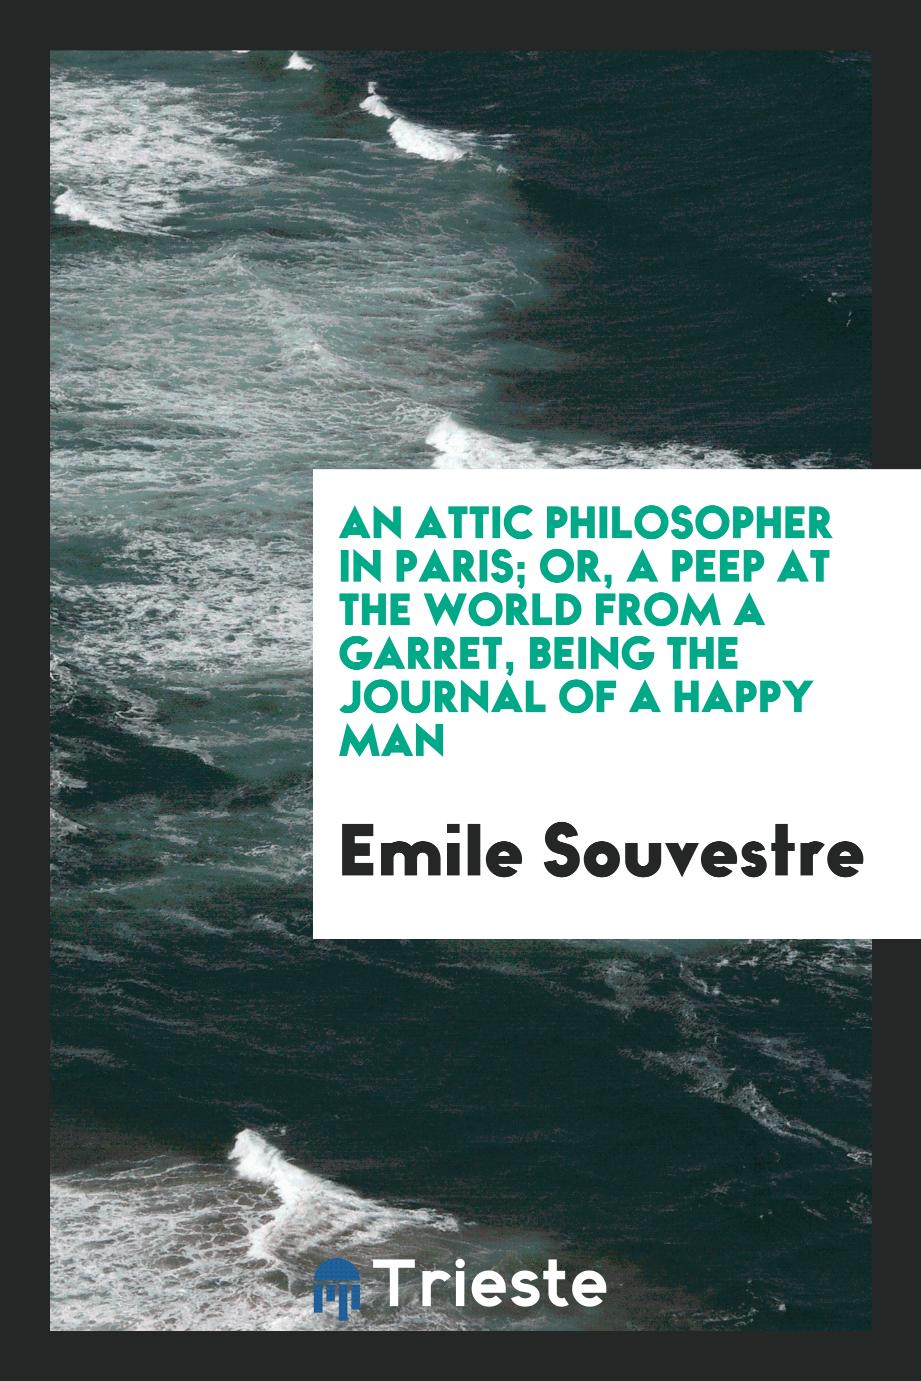 An Attic Philosopher in Paris; Or, A Peep at the World from a Garret, Being the Journal of a Happy Man